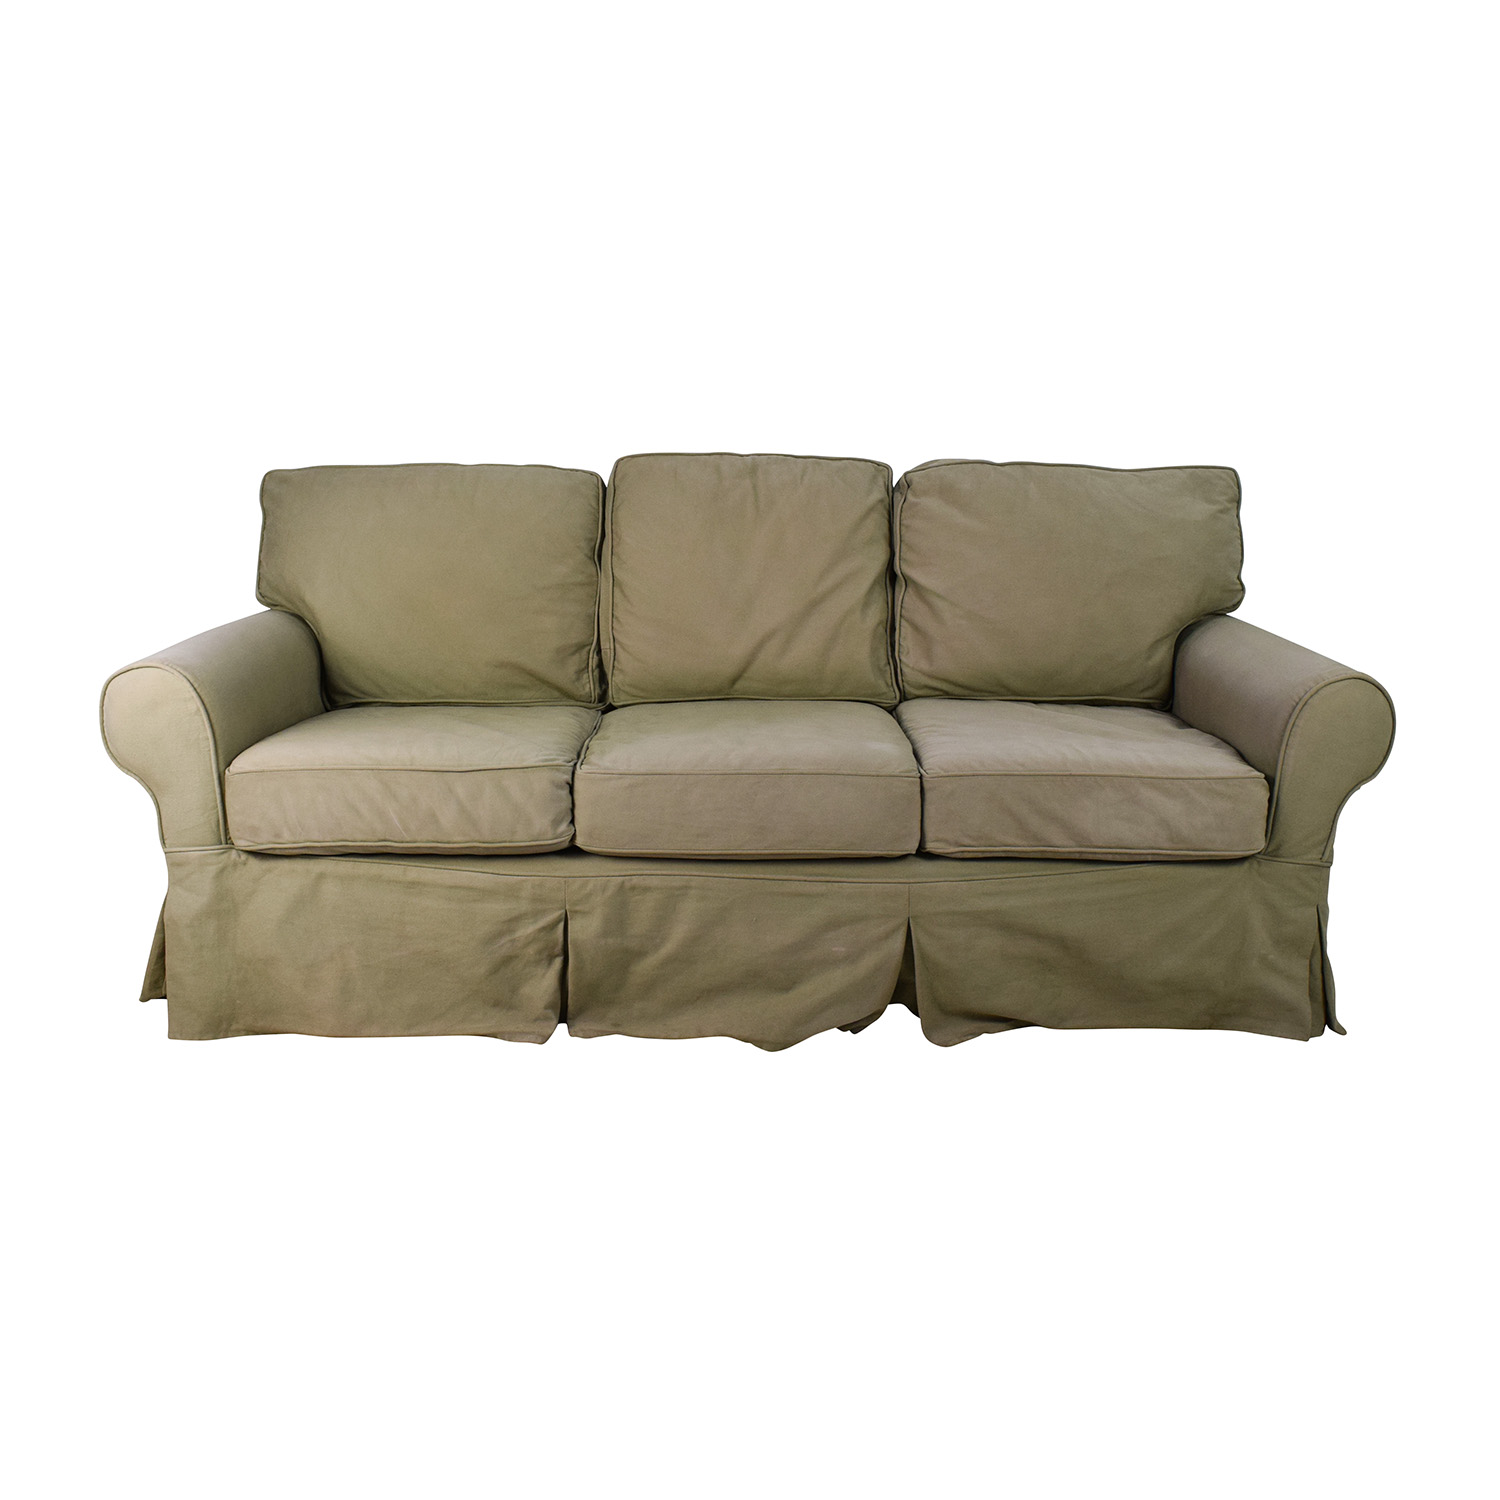 sage leather sofa bristol supplies bed pottery barn bonners